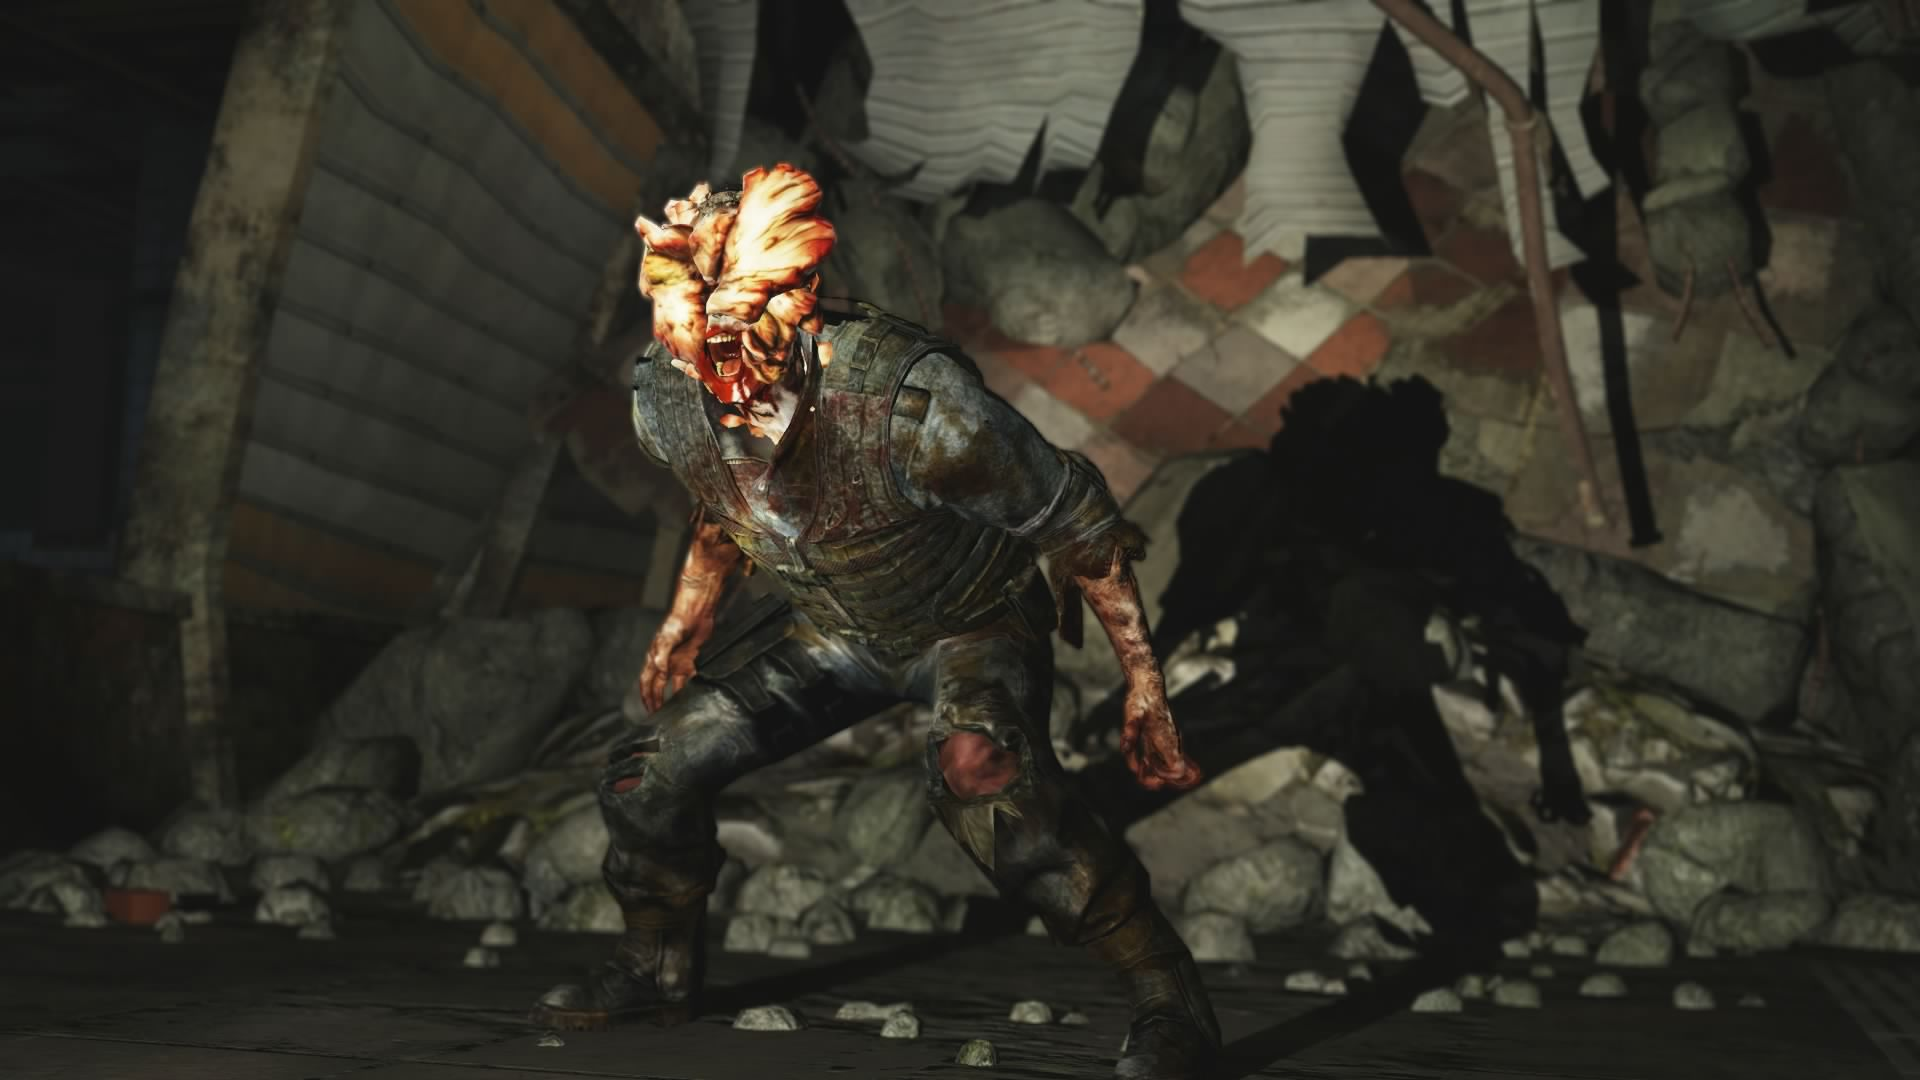 The Last of Us is one of the best zombie horror games of the decade, if not all-time.